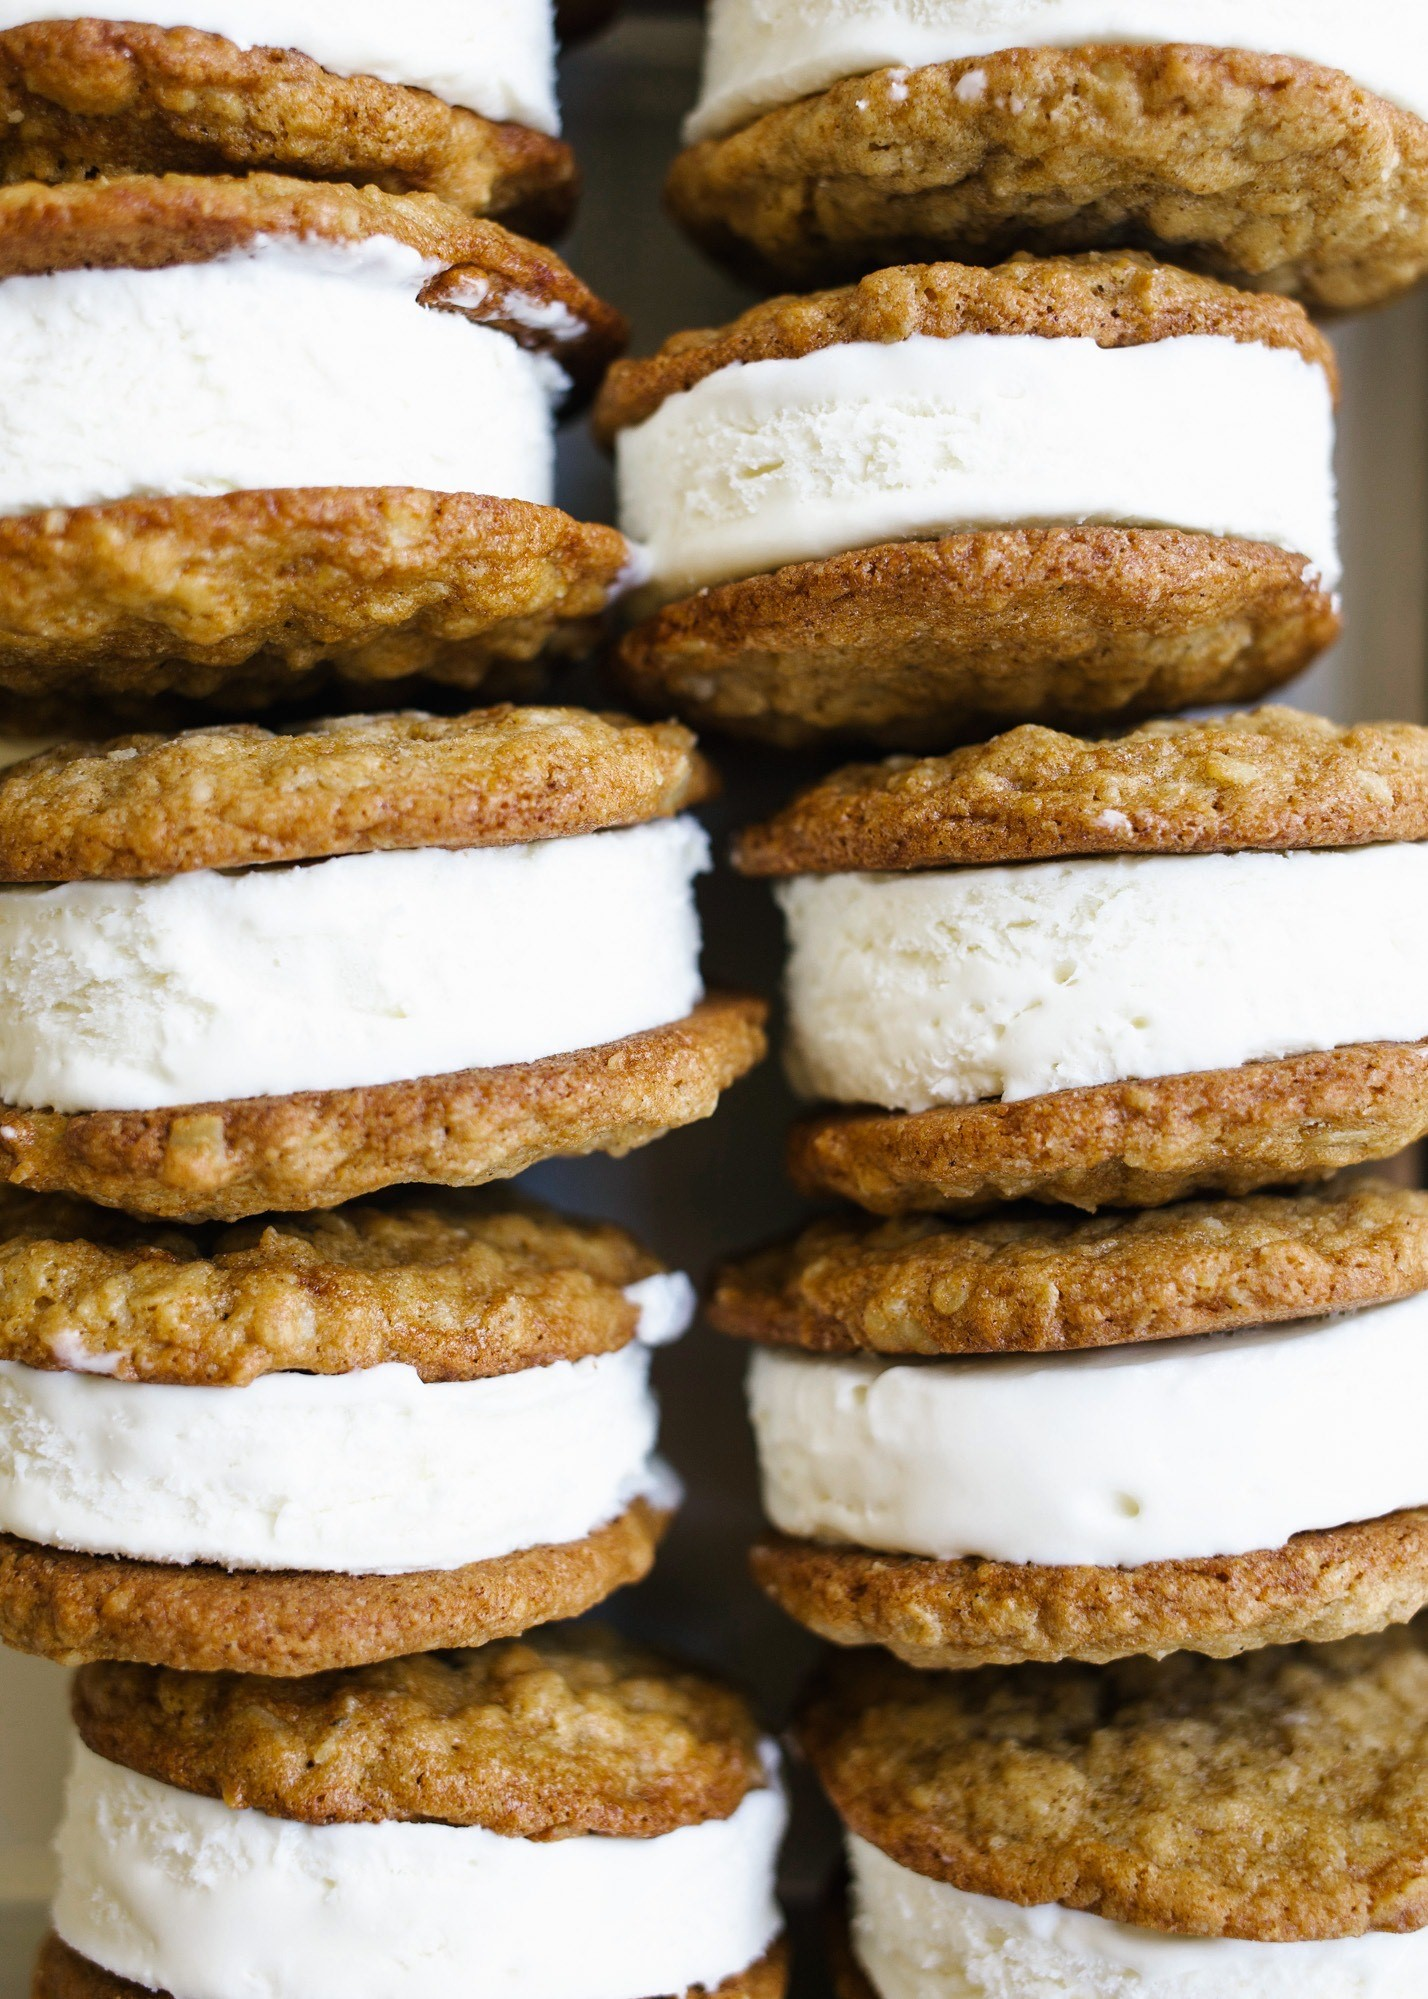 Homemade oatmeal cream pie cookies are a delicious treat. This recipe makes twenty mouth watering cookies.